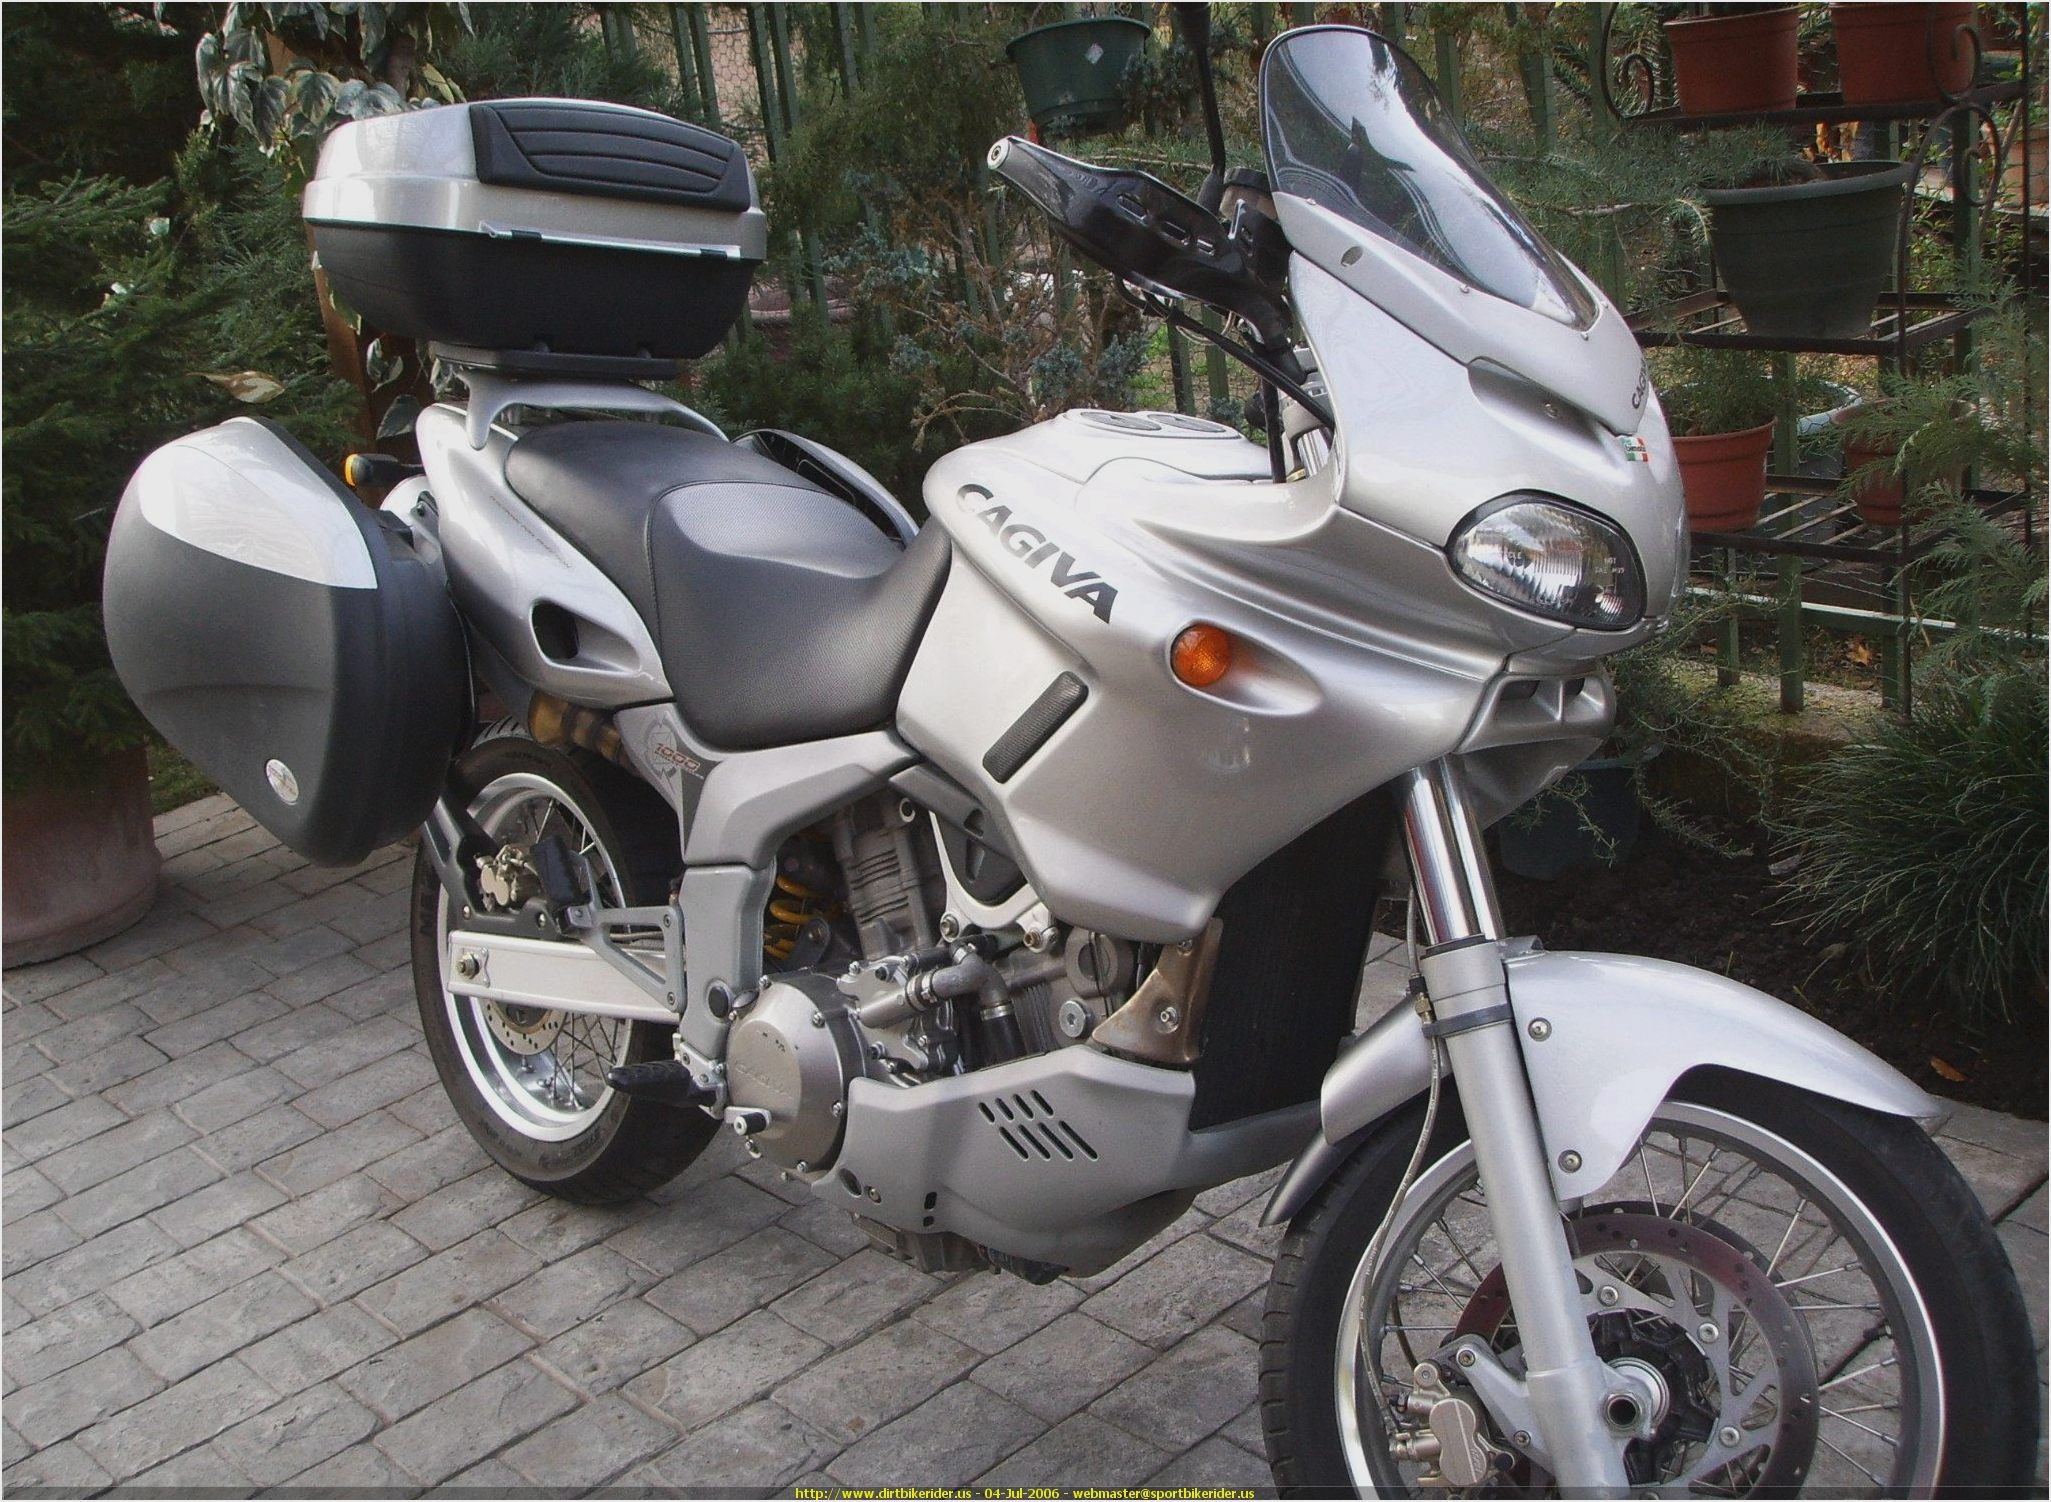 Cagiva Navigator 1000 images #69698